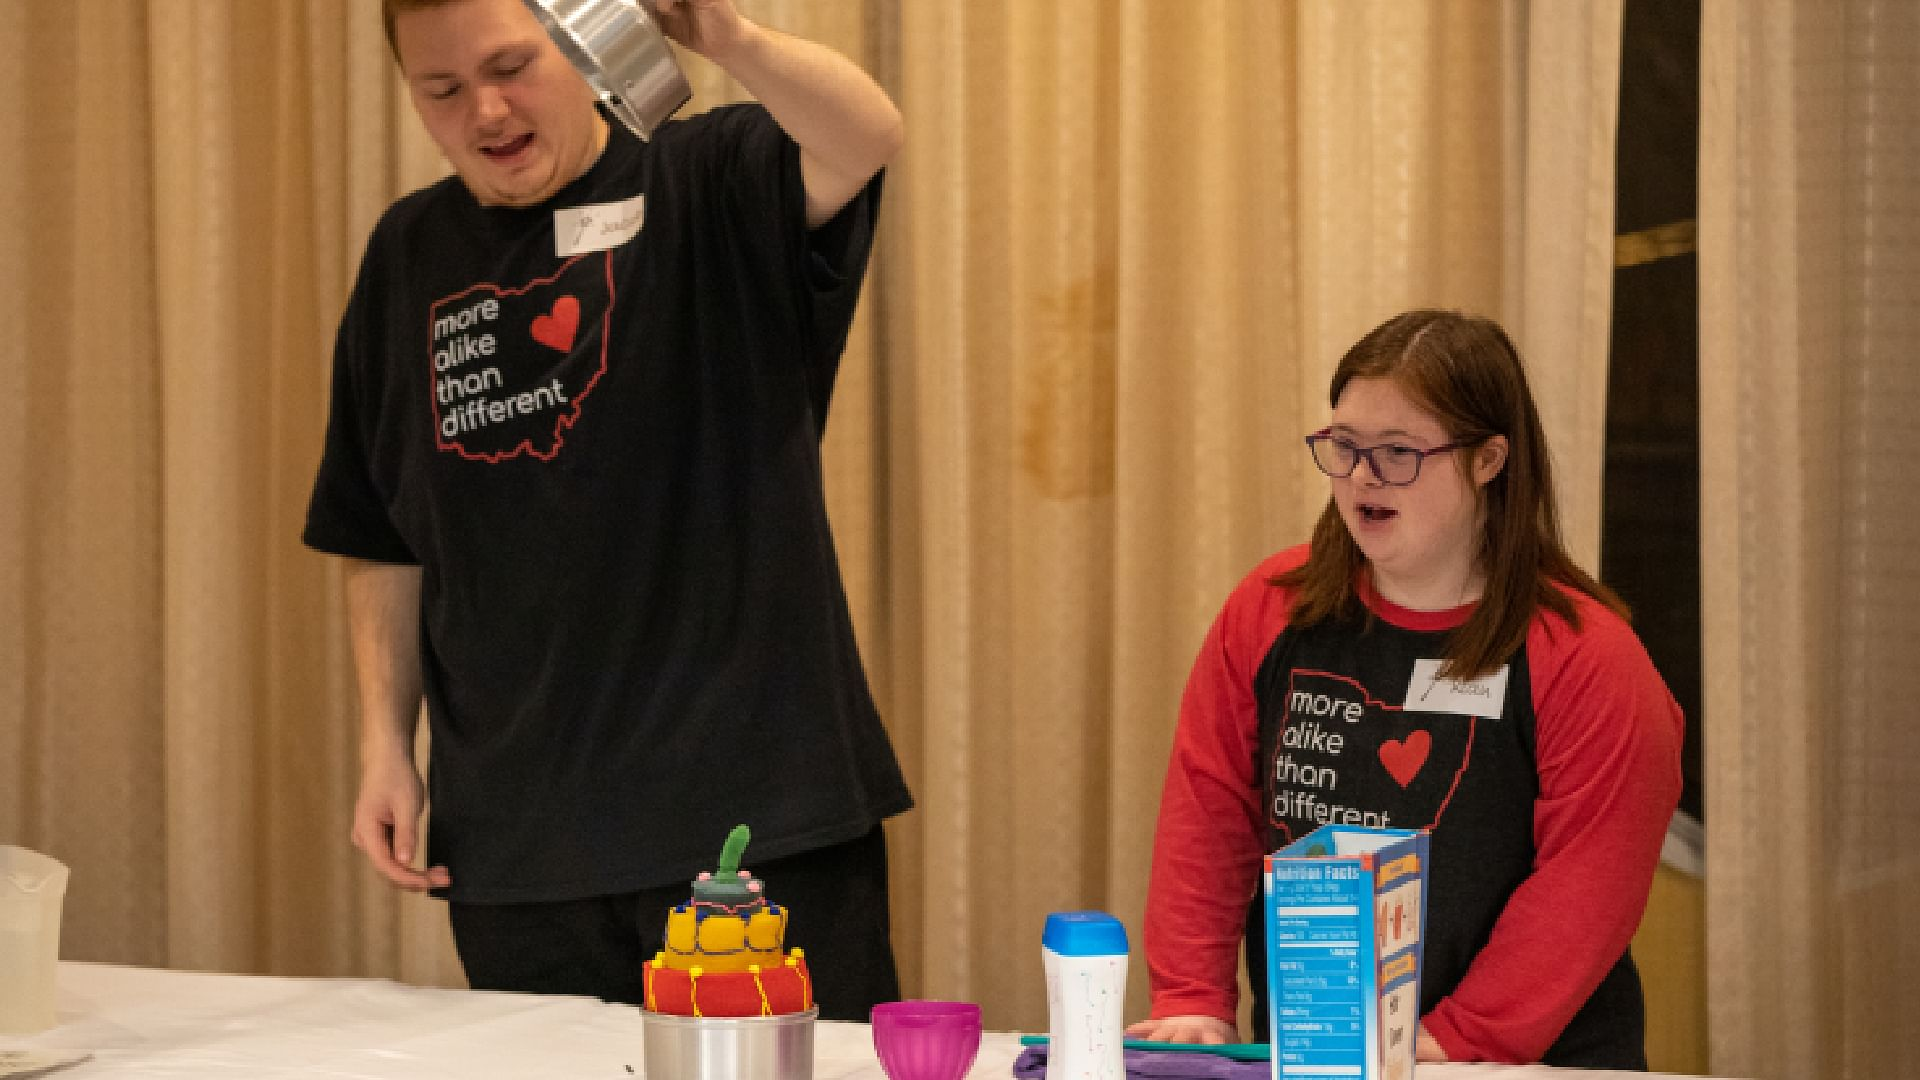 Two young kids are excited to show off an easy magic trick they learned at a magic convention